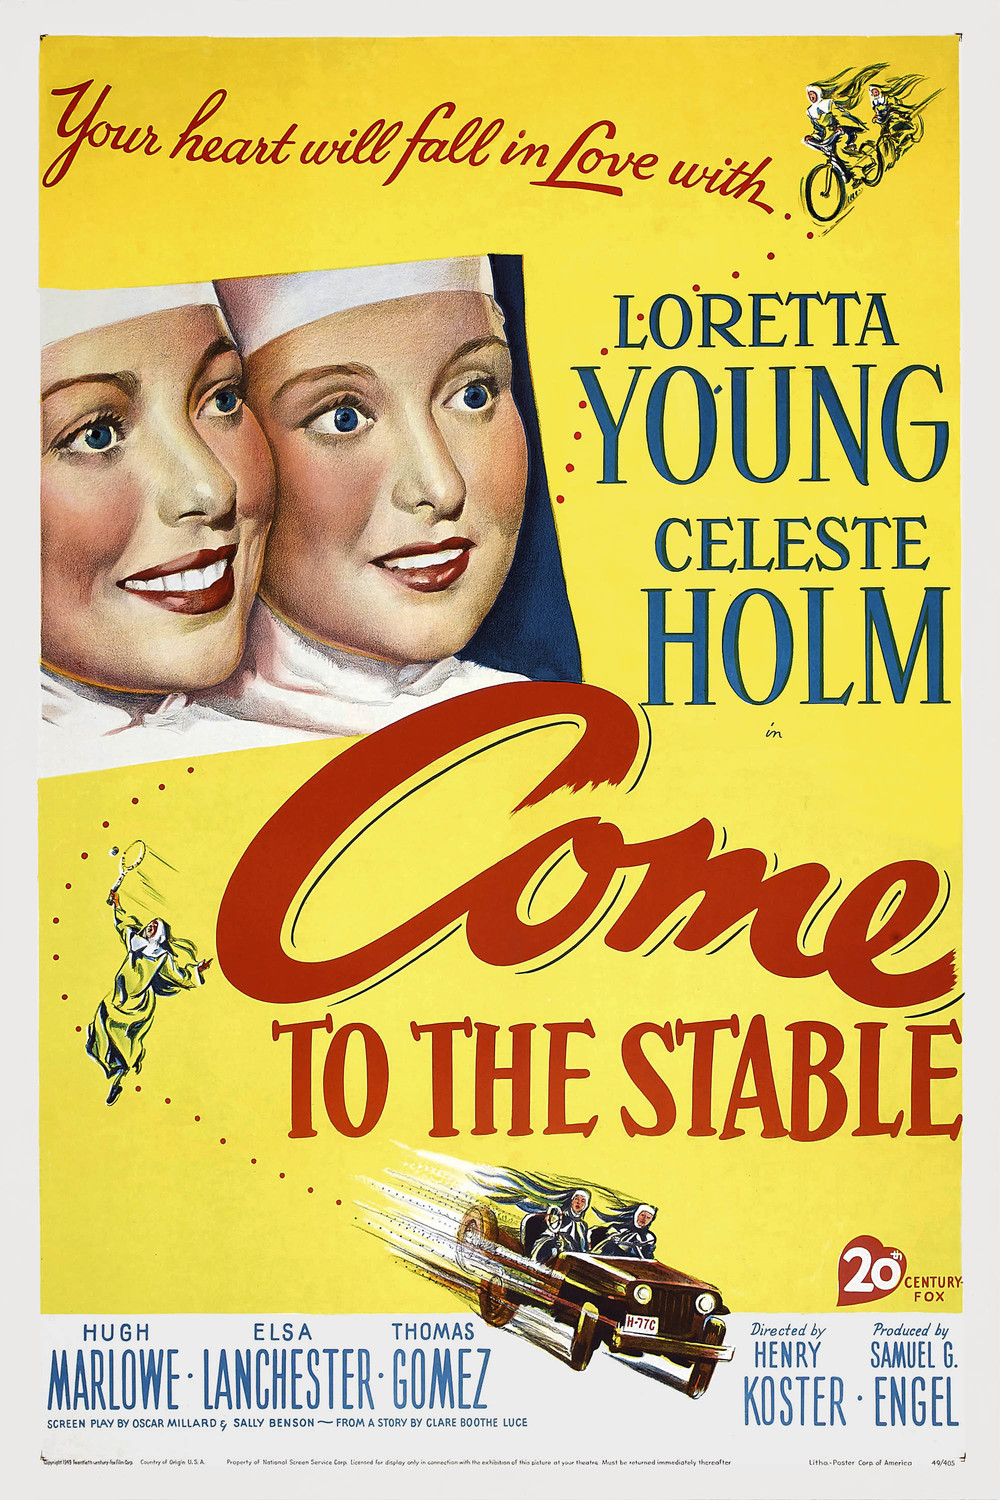 If you like starry-eyed nuns who believe they can get cynical rich guys to donate expensive land to charitable causes while speeding around in jeeps and competing in tennis matches (and lots of snowy scenes of Connecticut hillside locales) then Come to the Stable (1949) might be right up your alley.